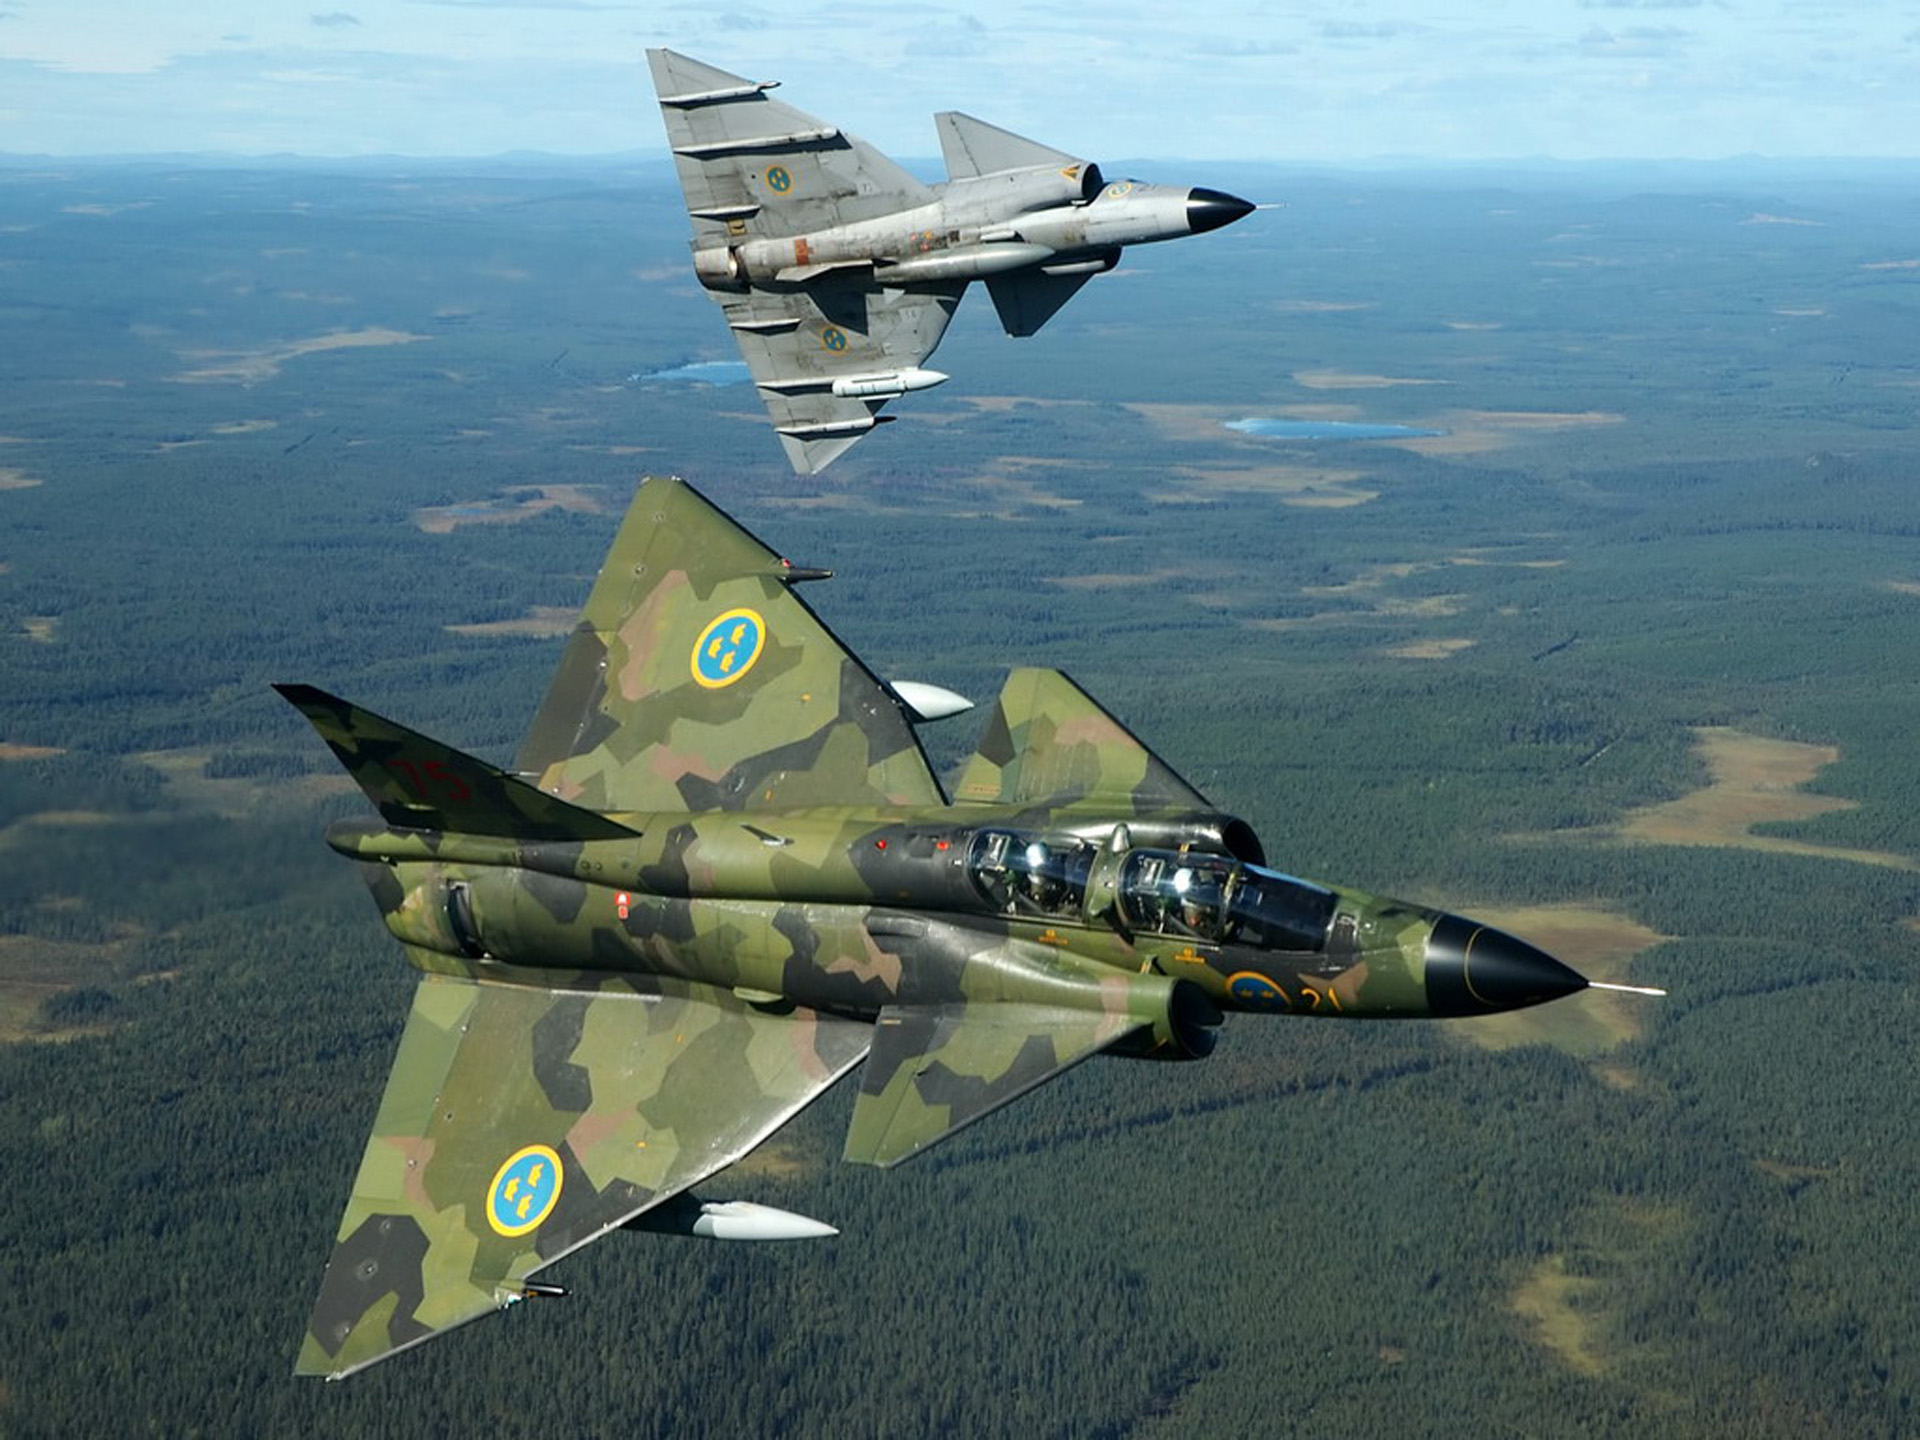 Swedish jetfighter photo